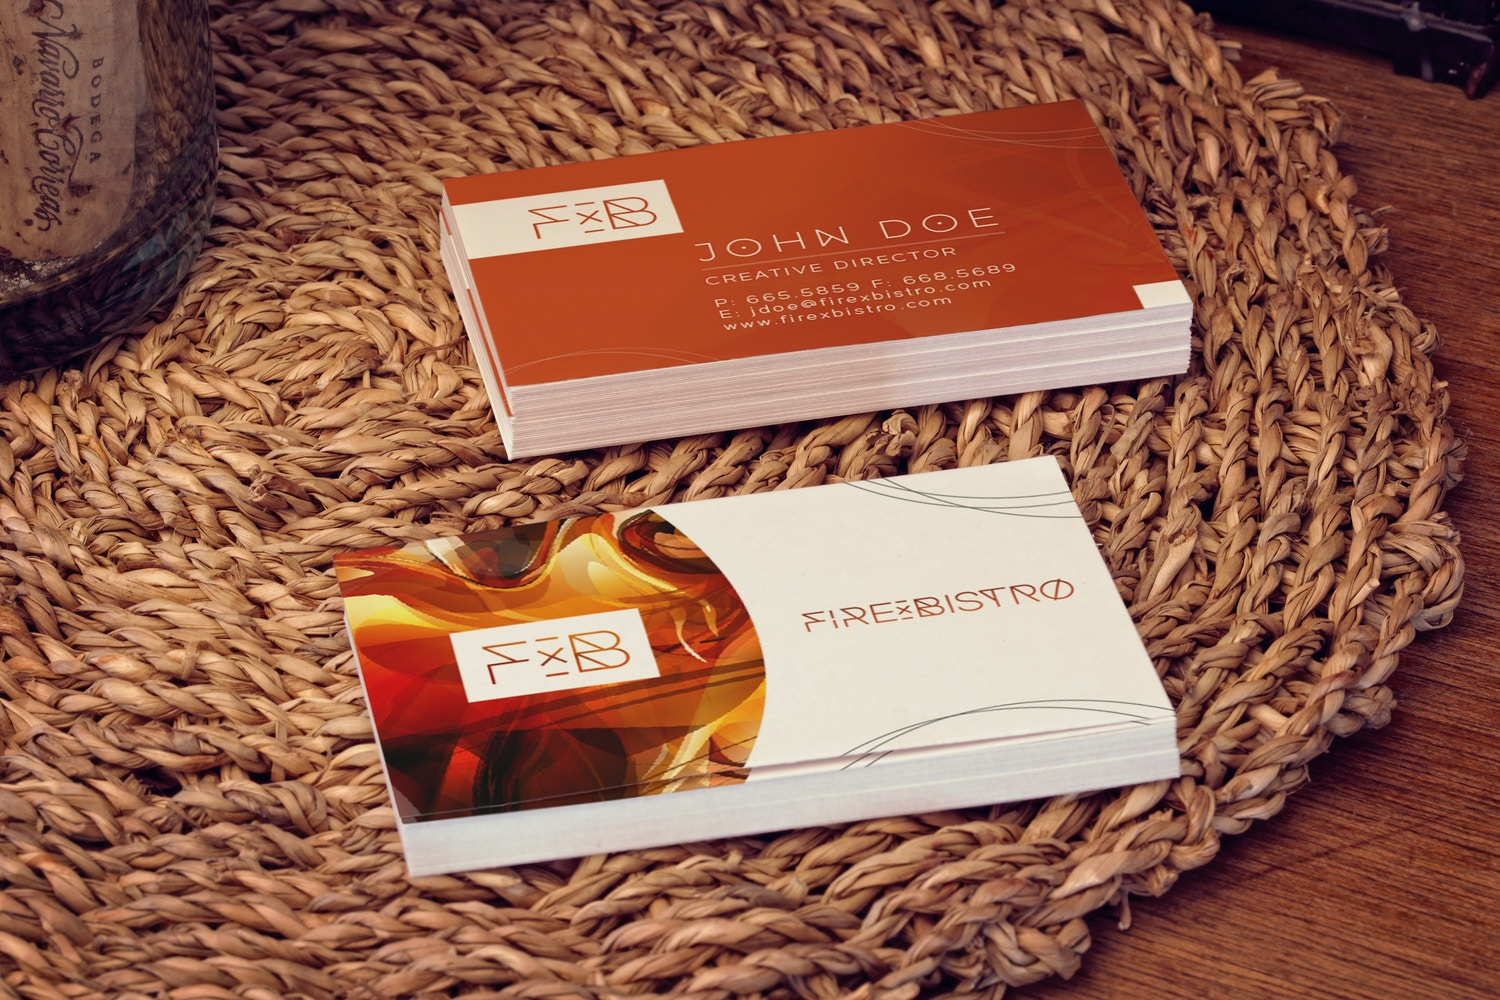 Business Cards Mockup 01 by 4to Pixel on Original Mockups